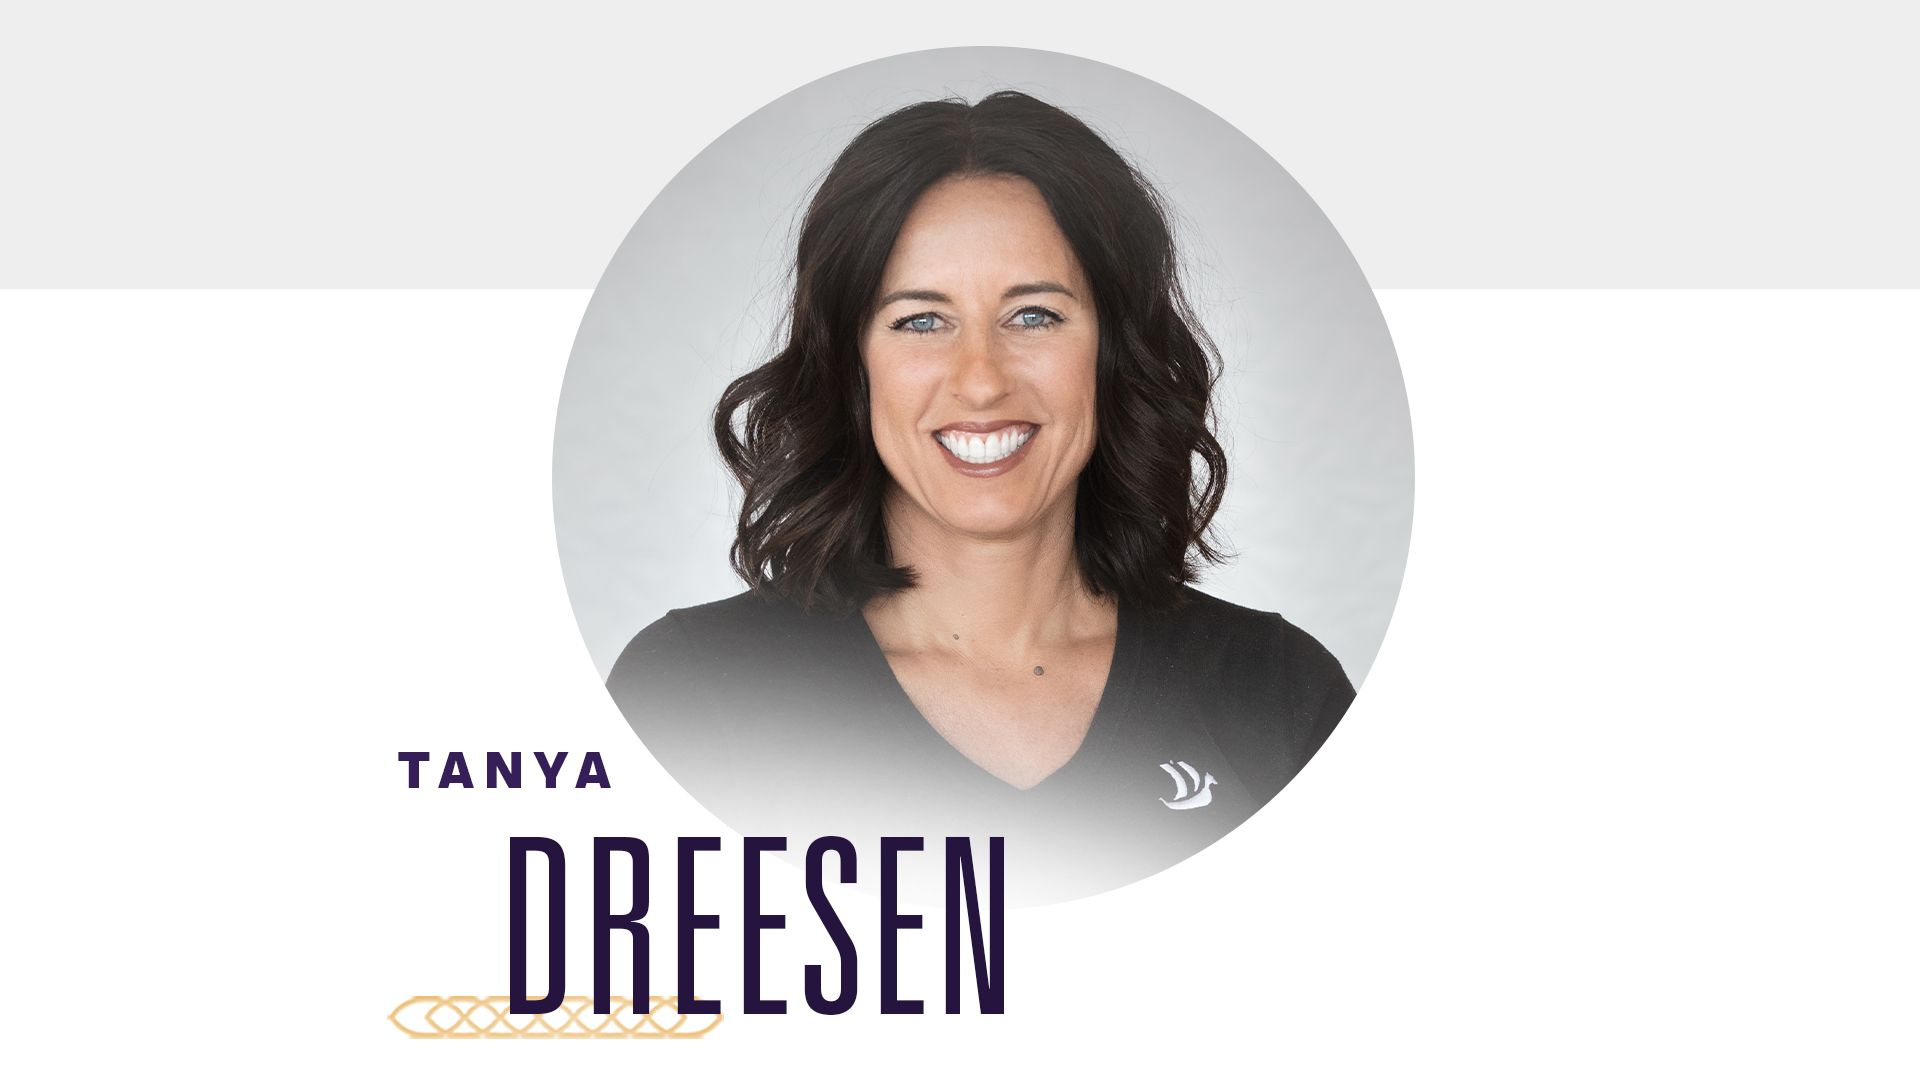 Tanya Dreesen: Vice President of Partnership Activation + Special Projects, Minnesota Vikings